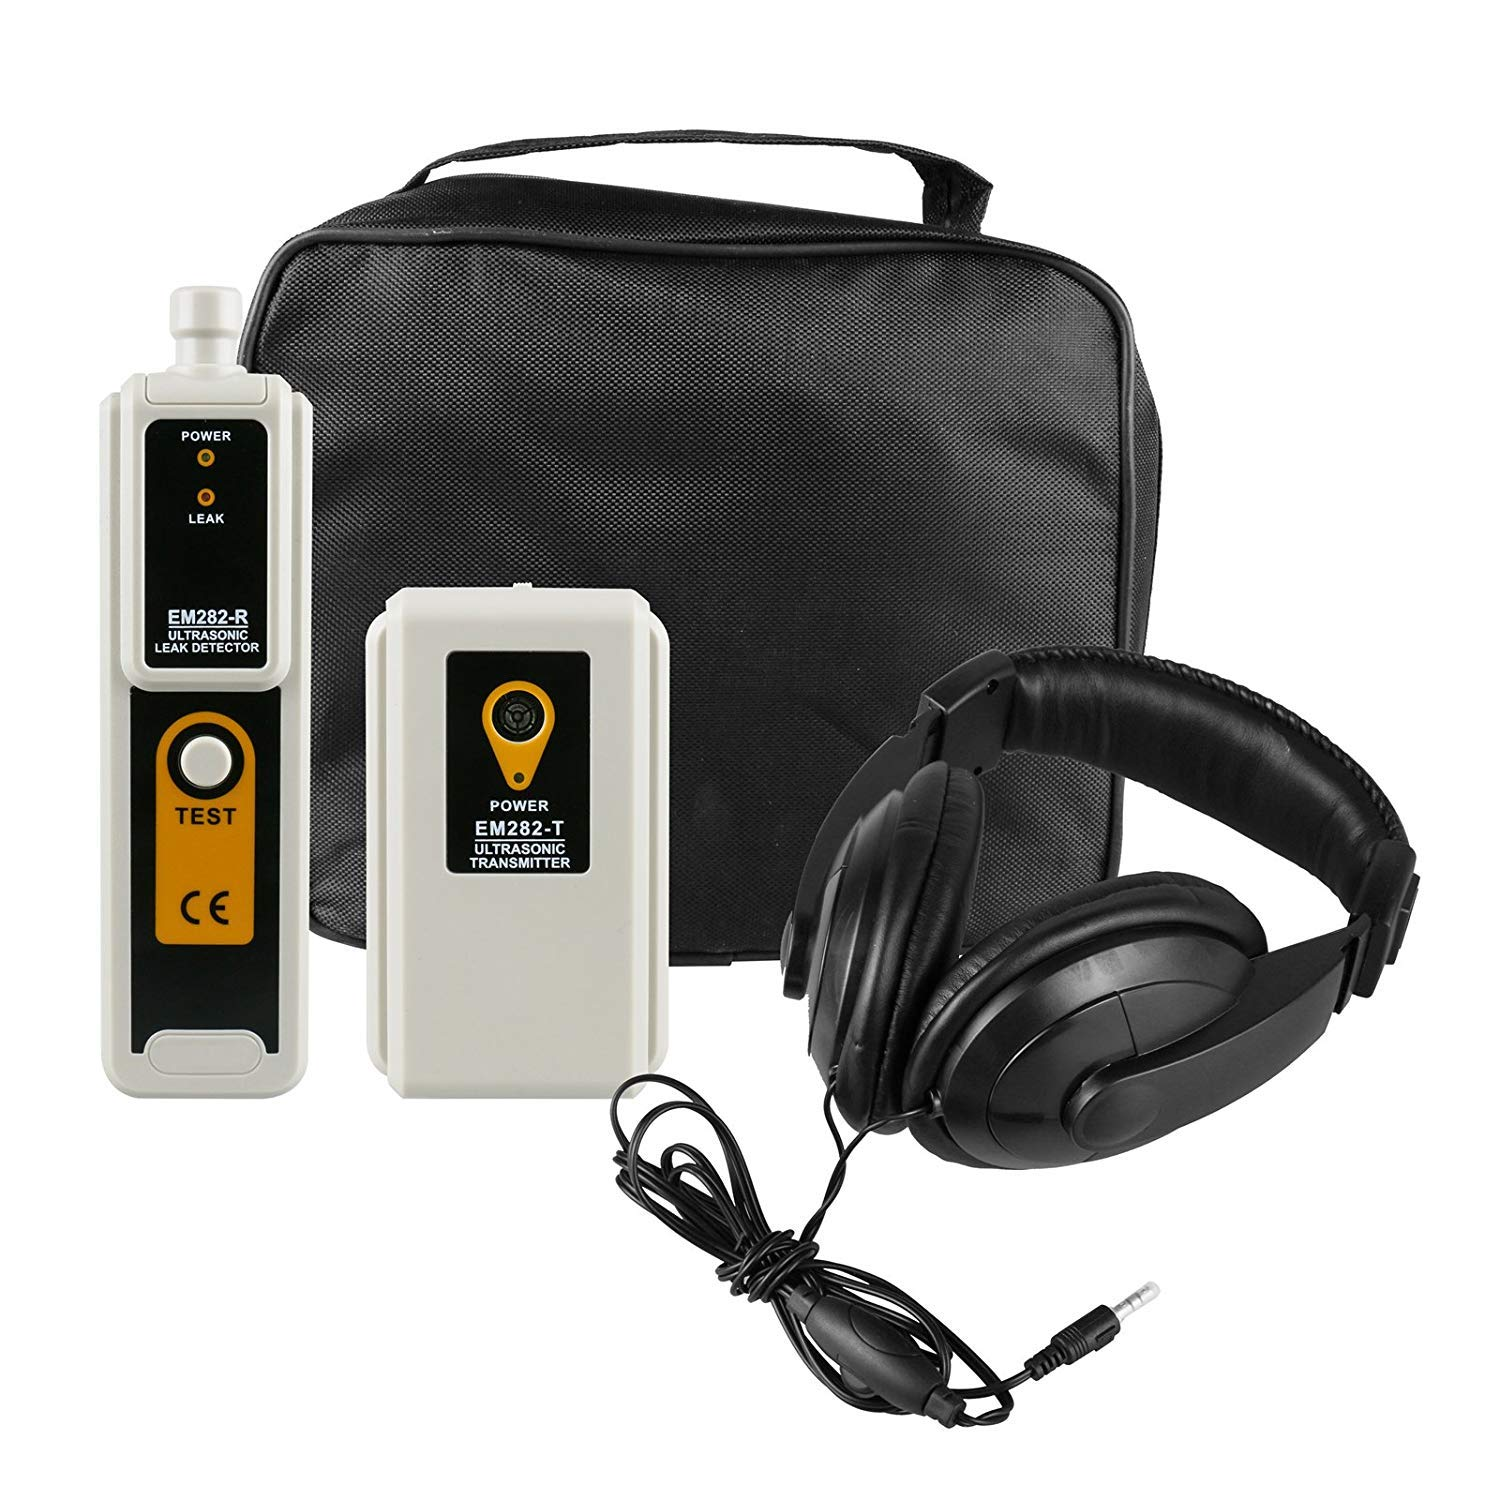 Leak Detection Tools,Ultrasonic Leak Detector & Transmitter with Headphone Accessory Kit for Pipeline/tire/Refrigeration Equipment Leak Detection, Automotive Window Seal Inspection etc.